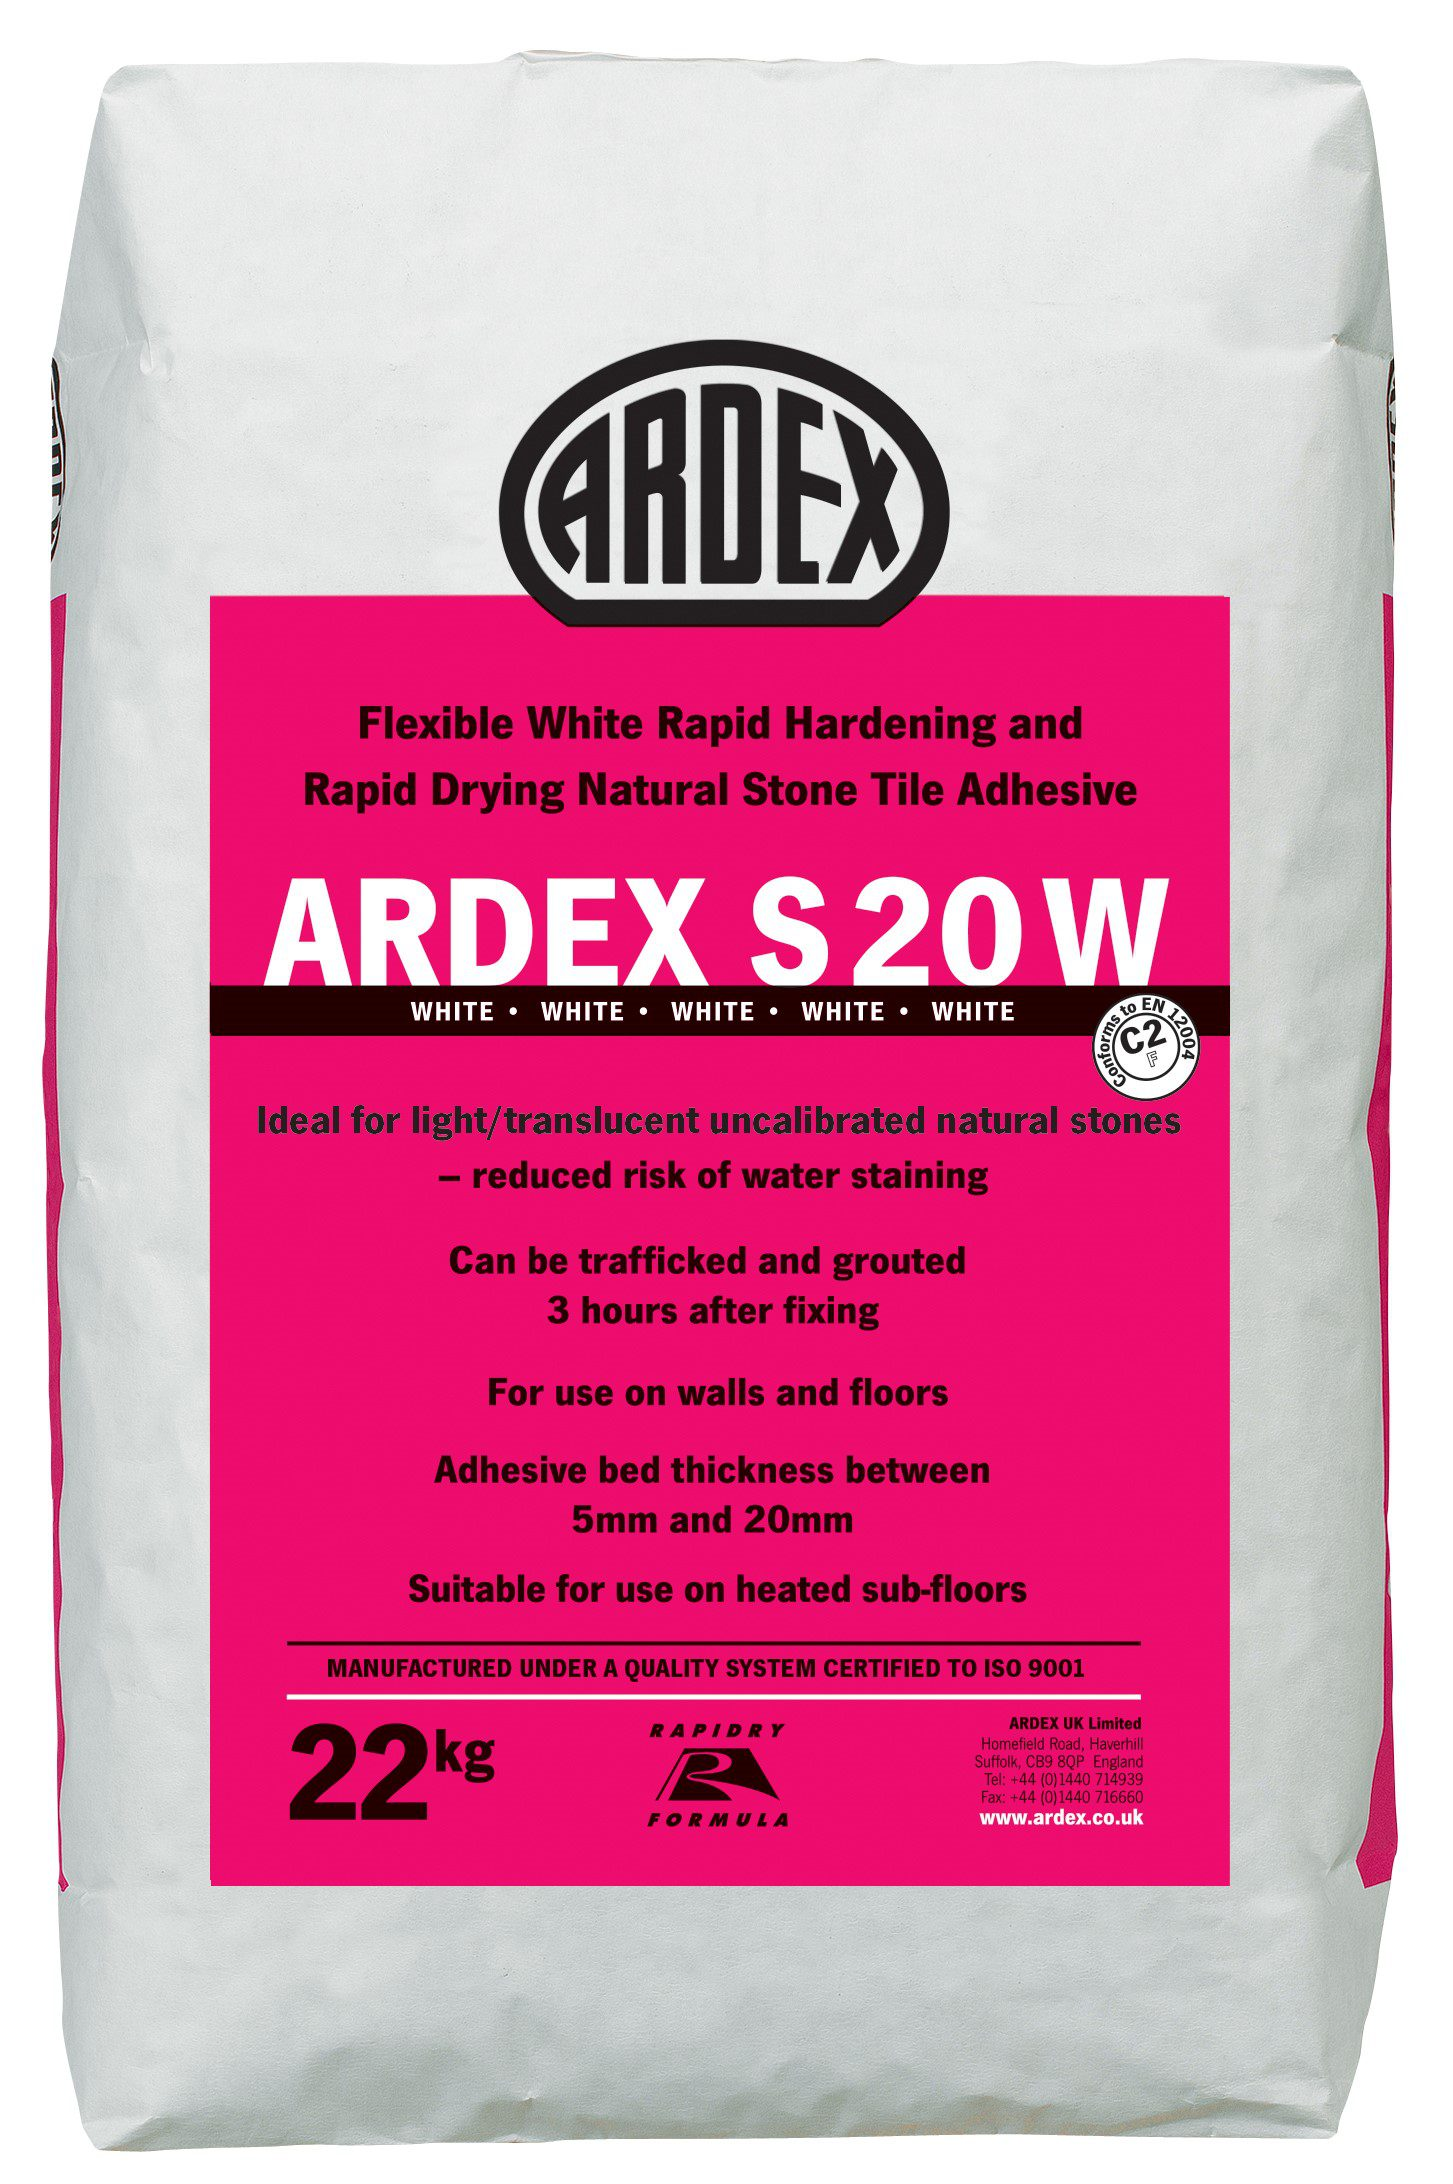 Ardex s20w flexible tile adhesive white 22kg bag screed giant ardex s20w flexible tile dailygadgetfo Image collections